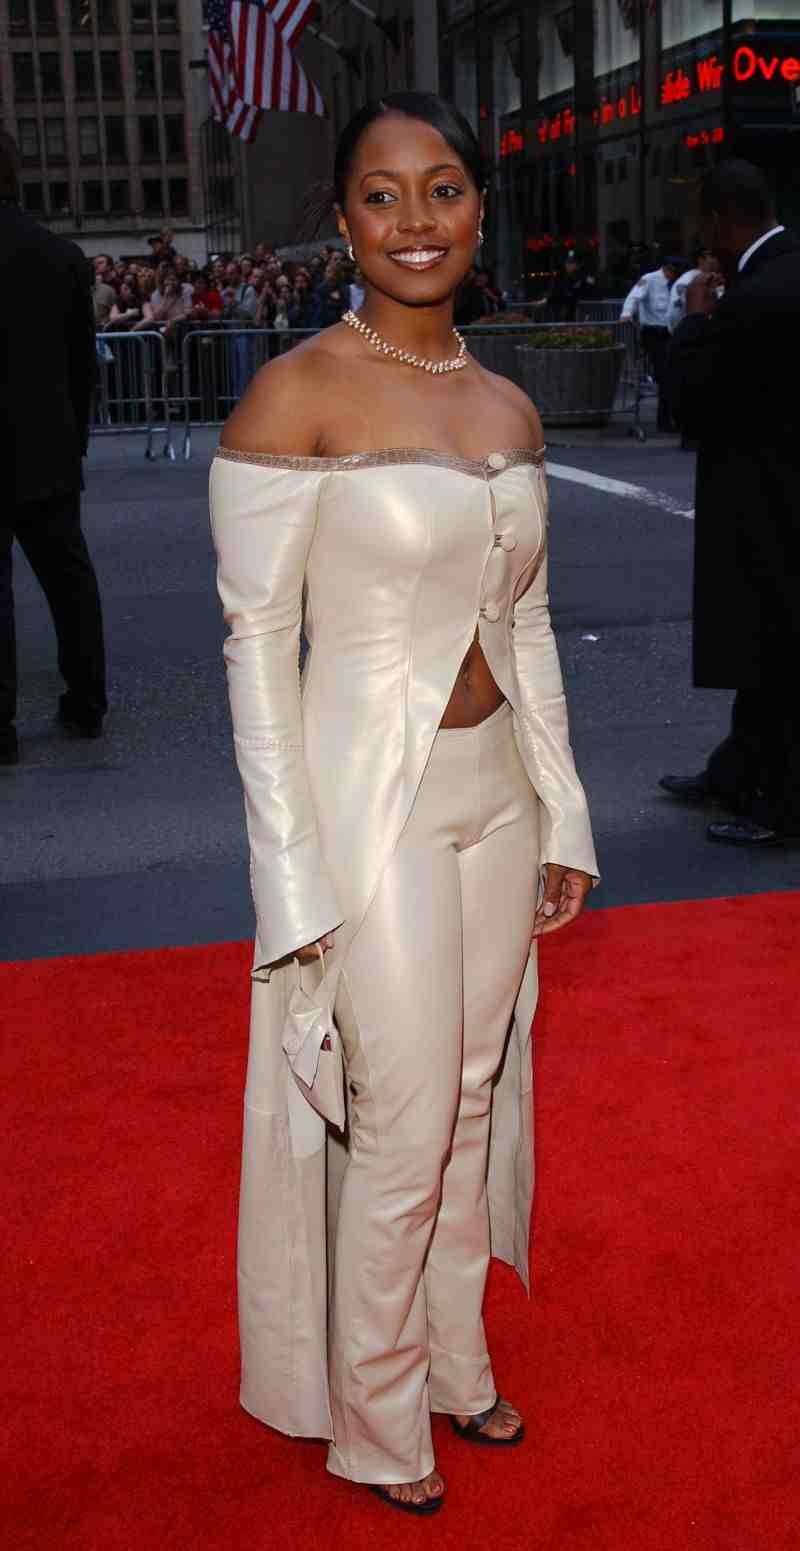 Keshia knight pulliam in the nude hentia photos